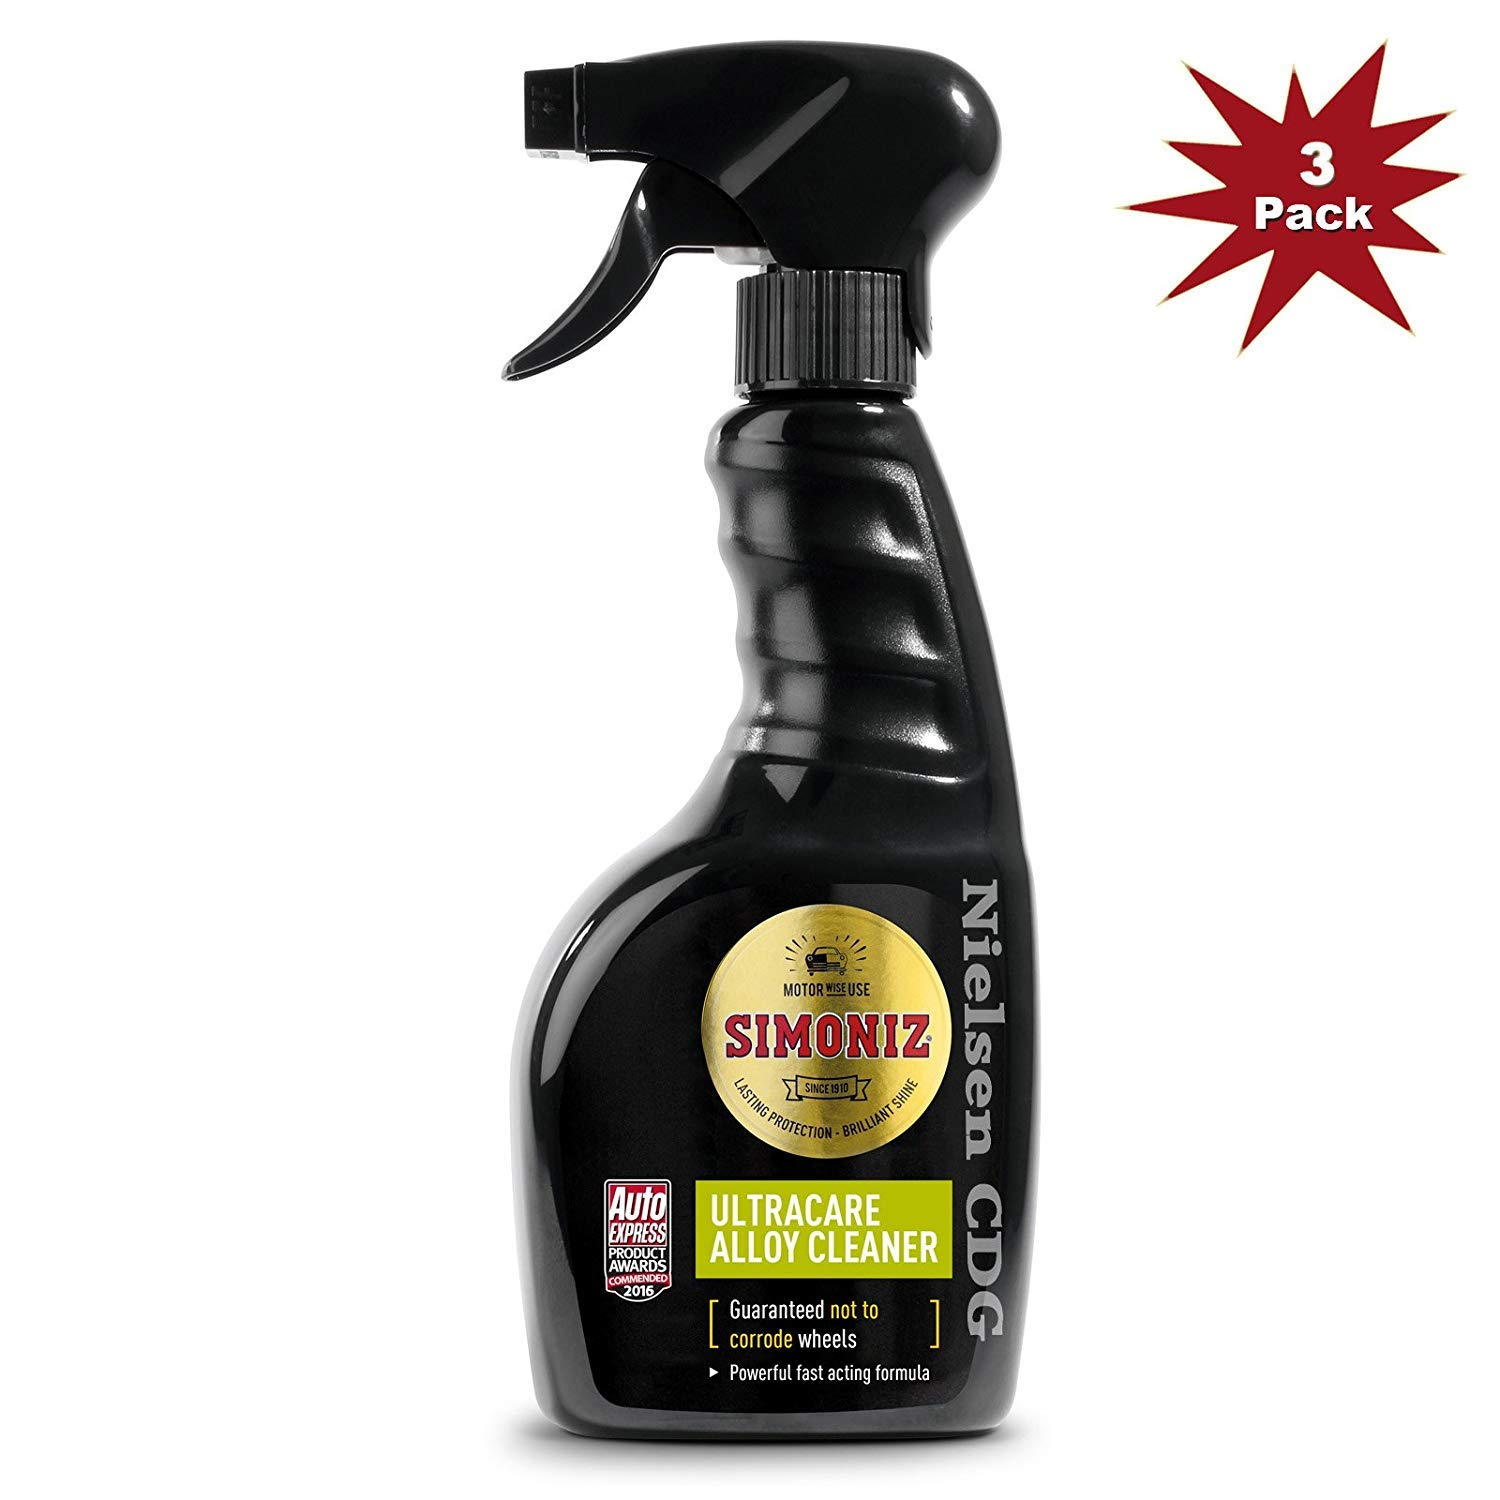 Simoniz Ultracare Alloy Wheel Cleaner - 3x500ml = 3pk Nielsen CDG